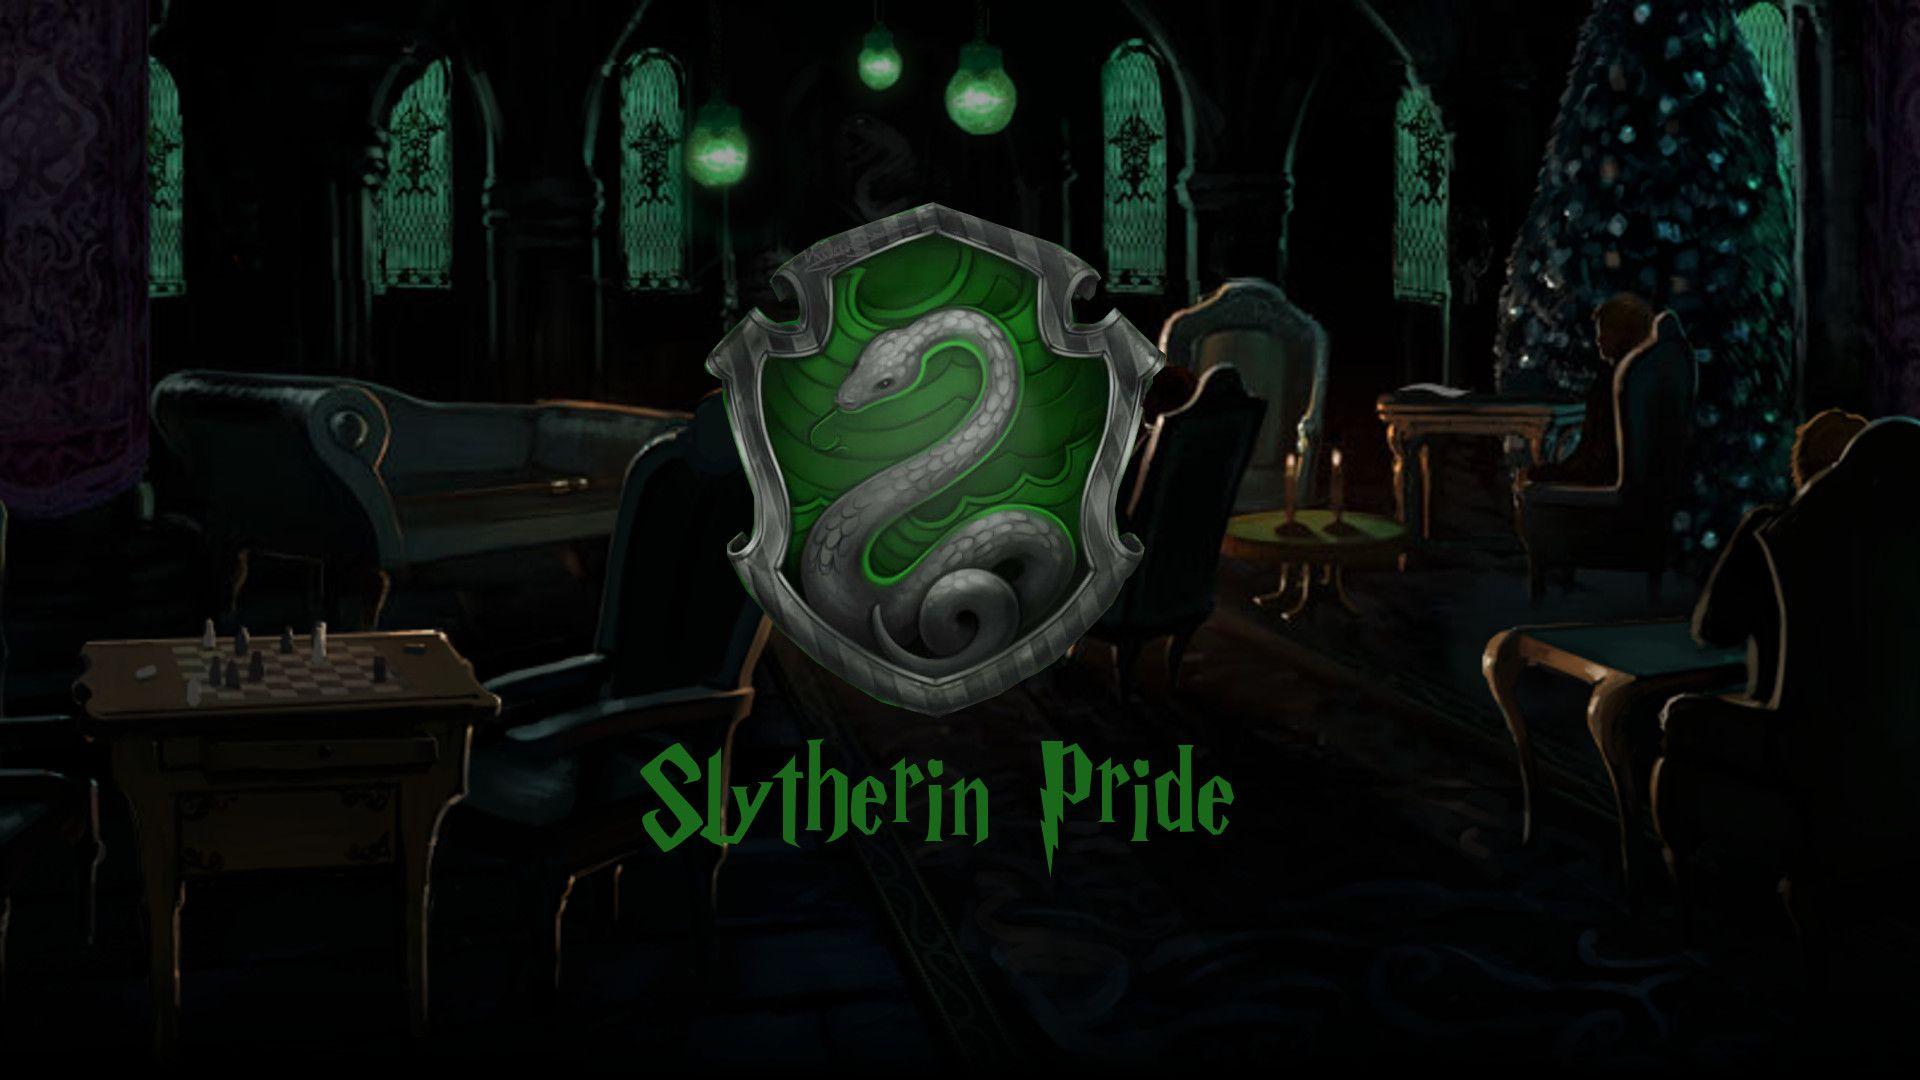 Slytherin House Wallpapers On Wallpaperdog